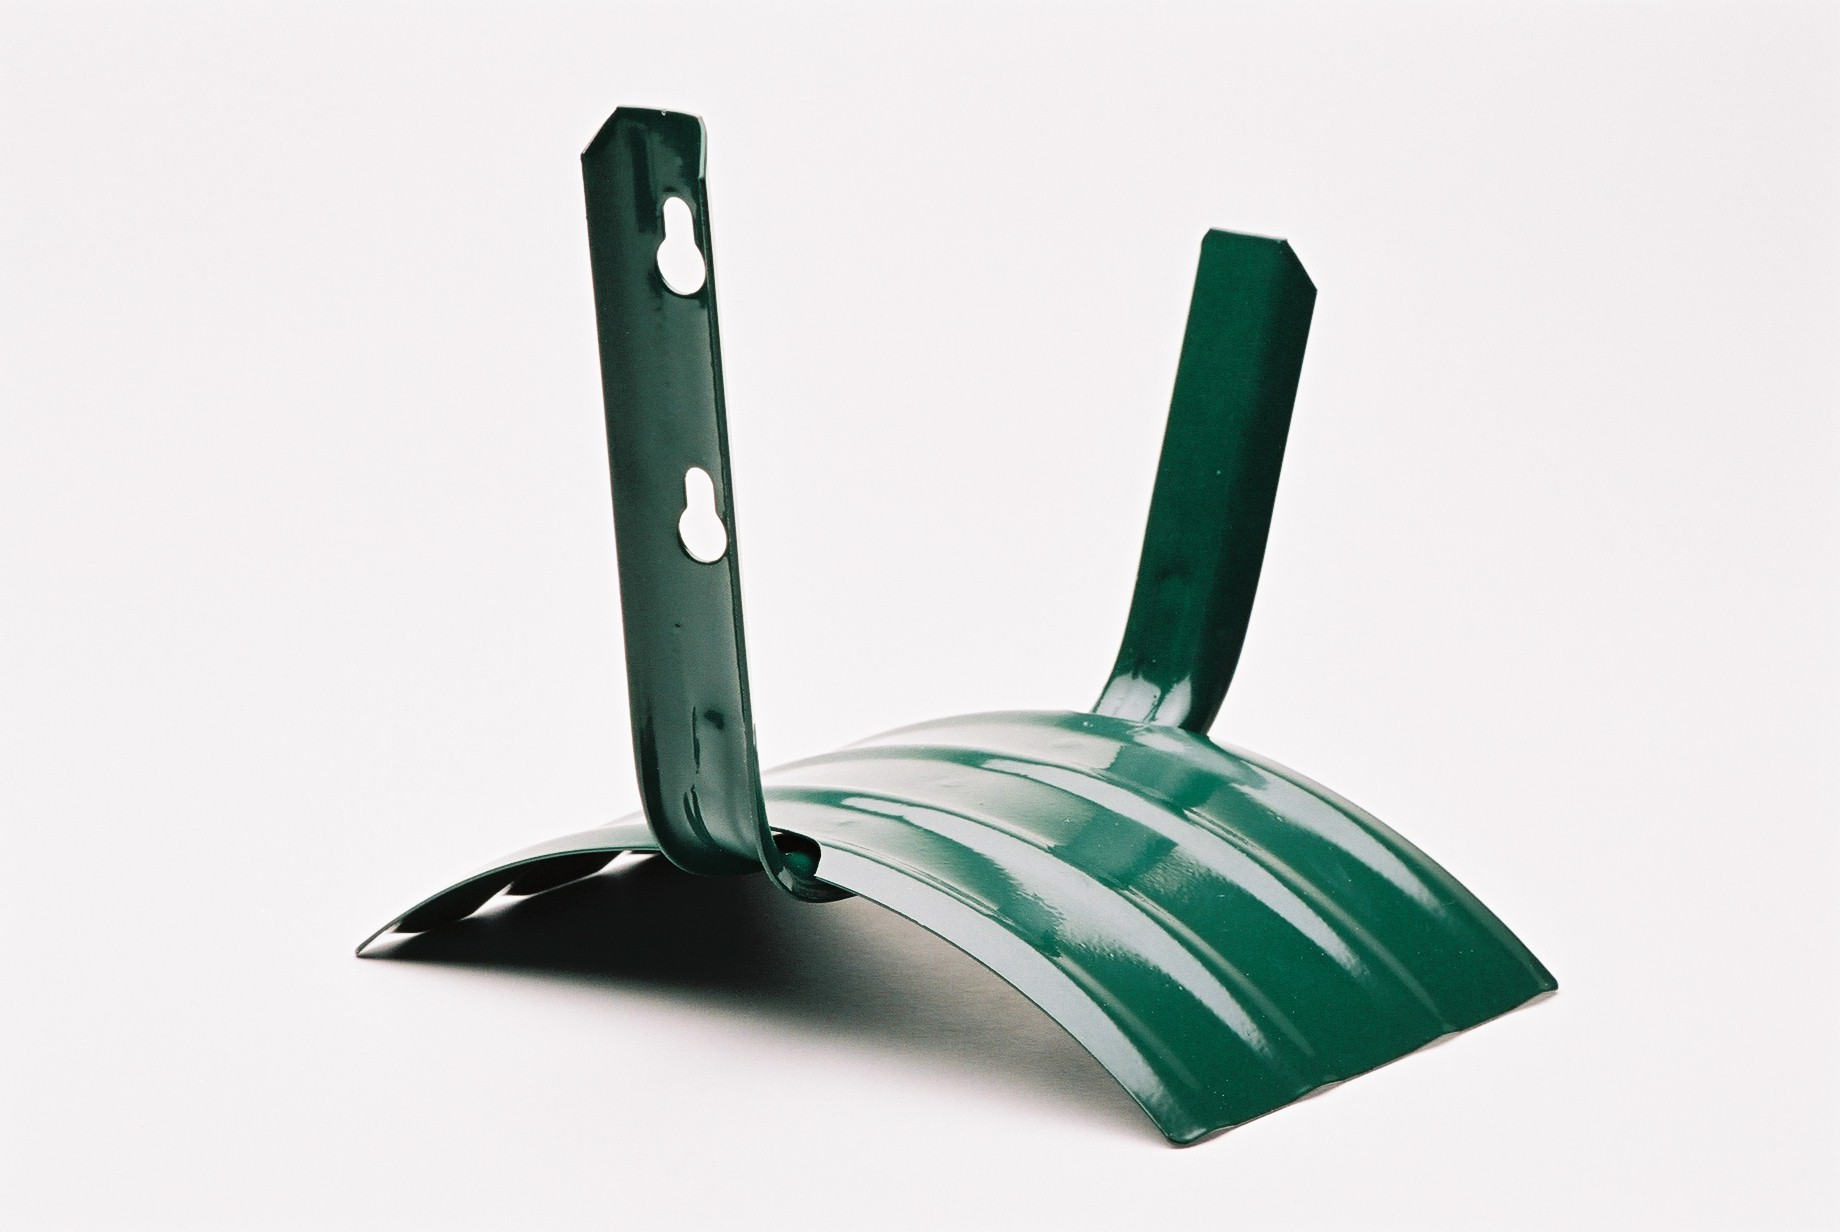 Hose hangers hr products